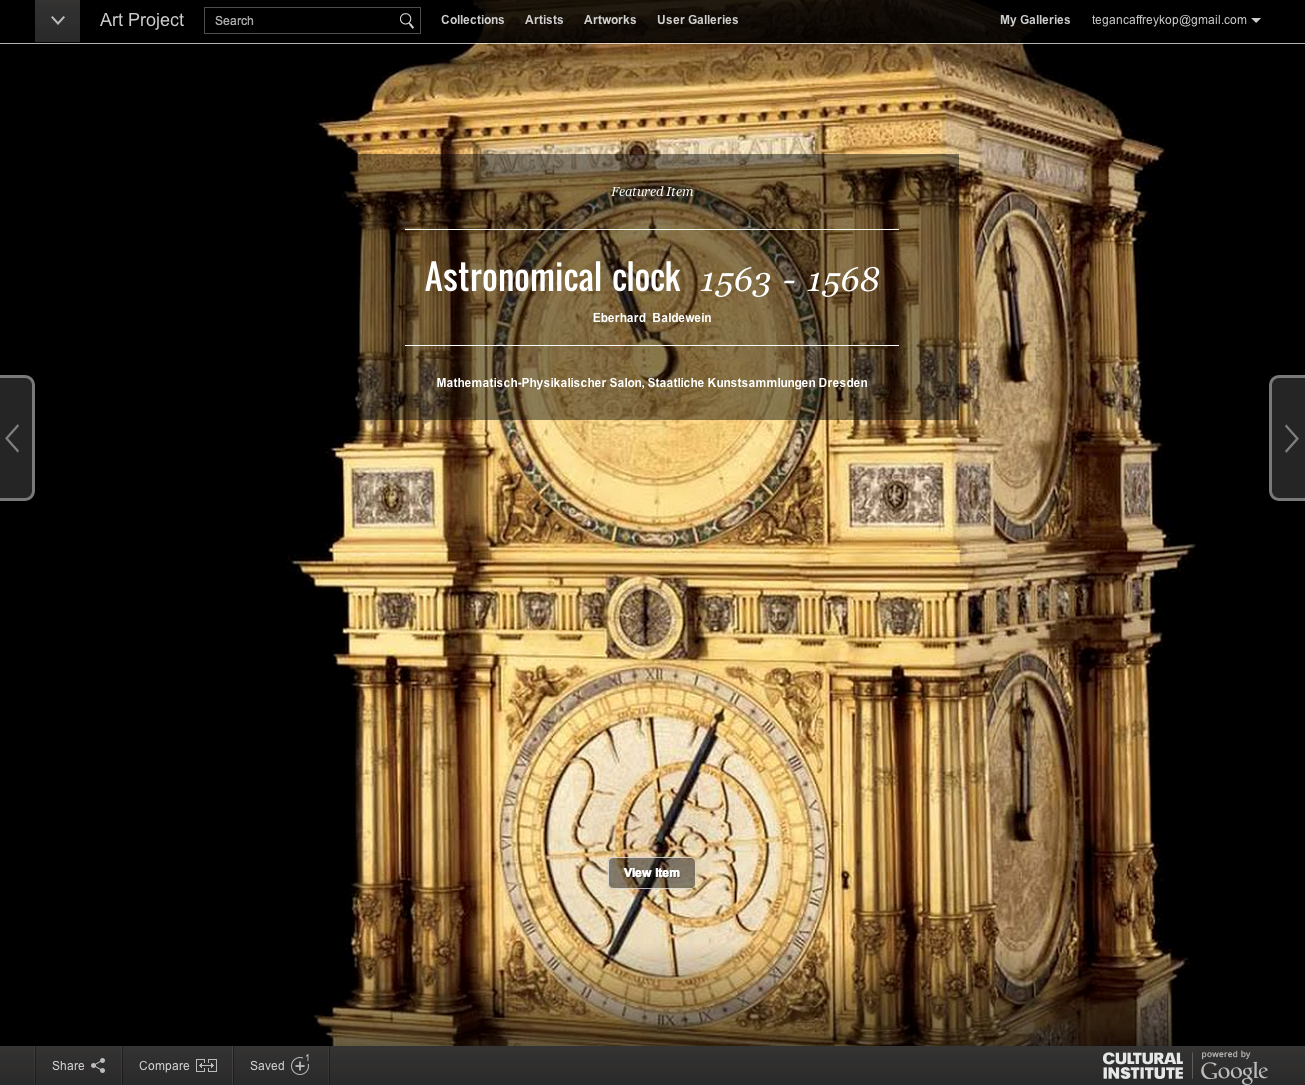 A snapshot of an interactive view of an Astronomical Clock from 1563 in Google Cultural Institute